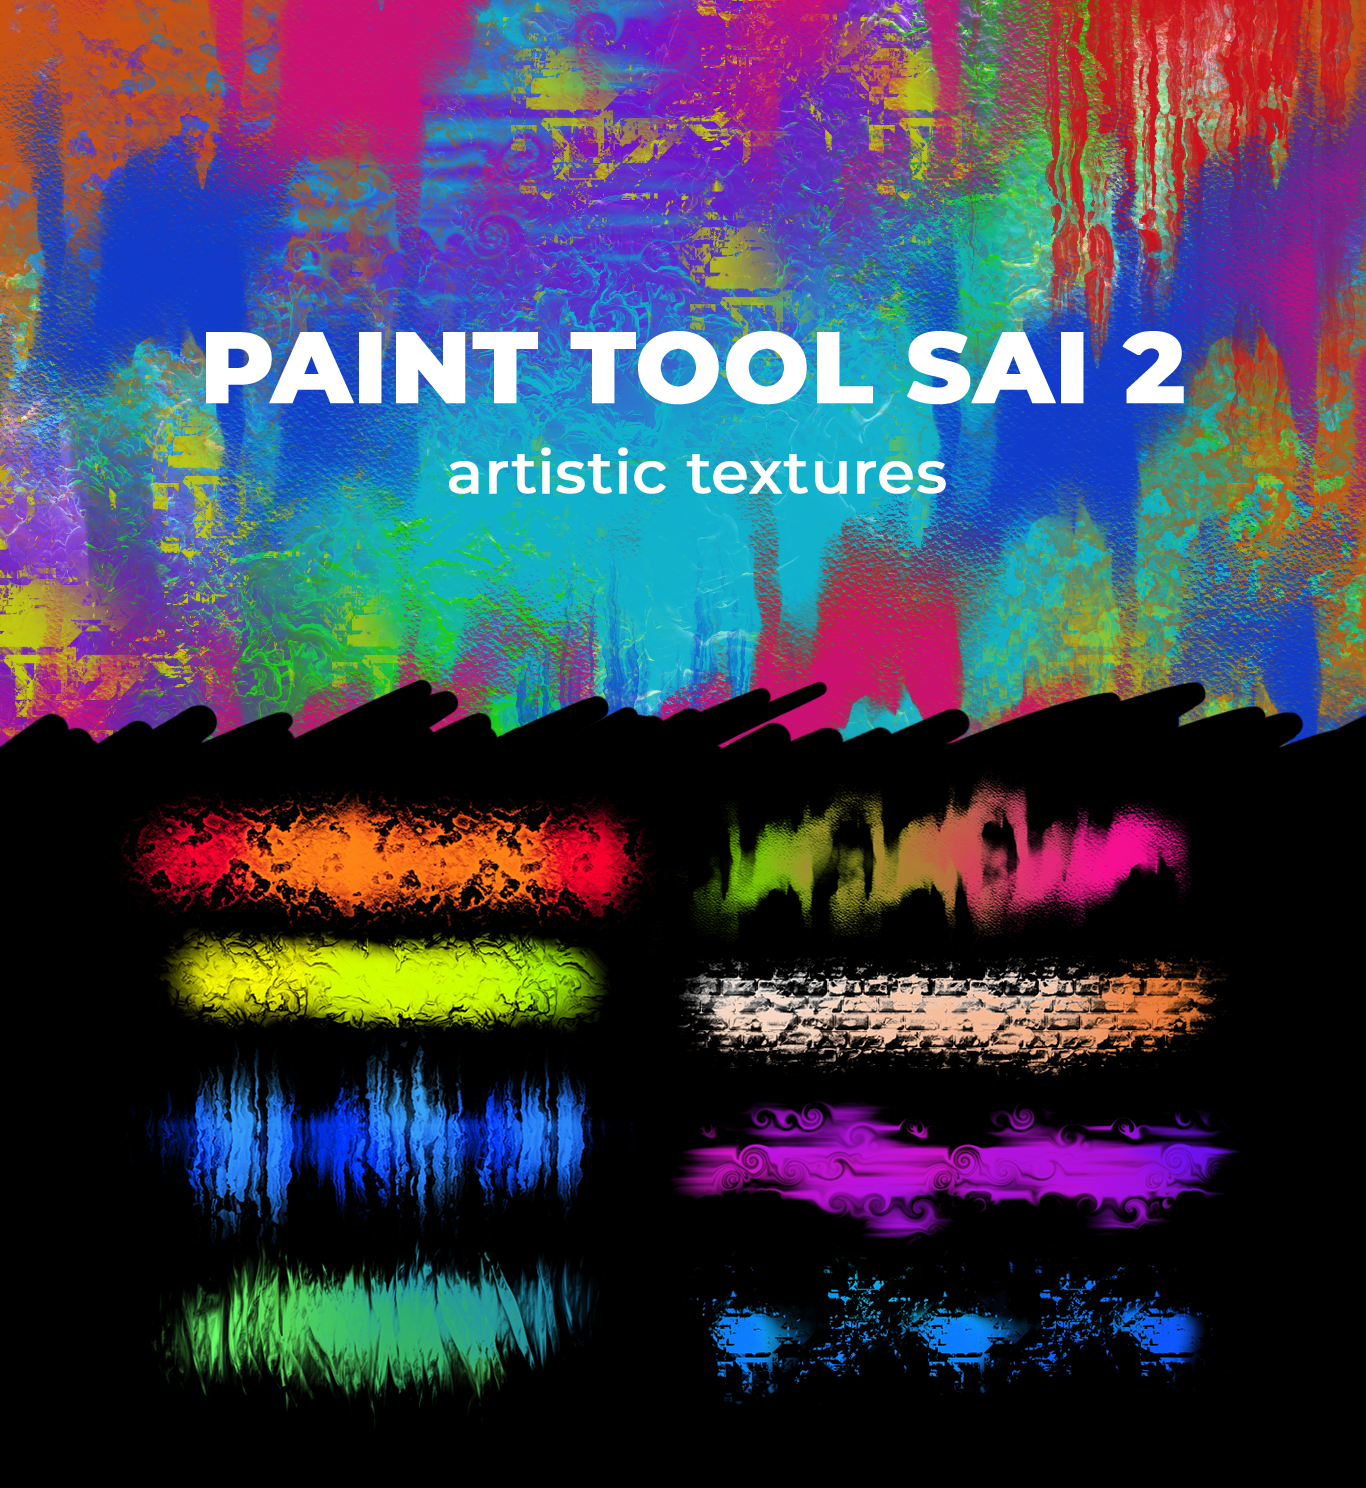 Artistic Textures for Paint Tool Sai 2